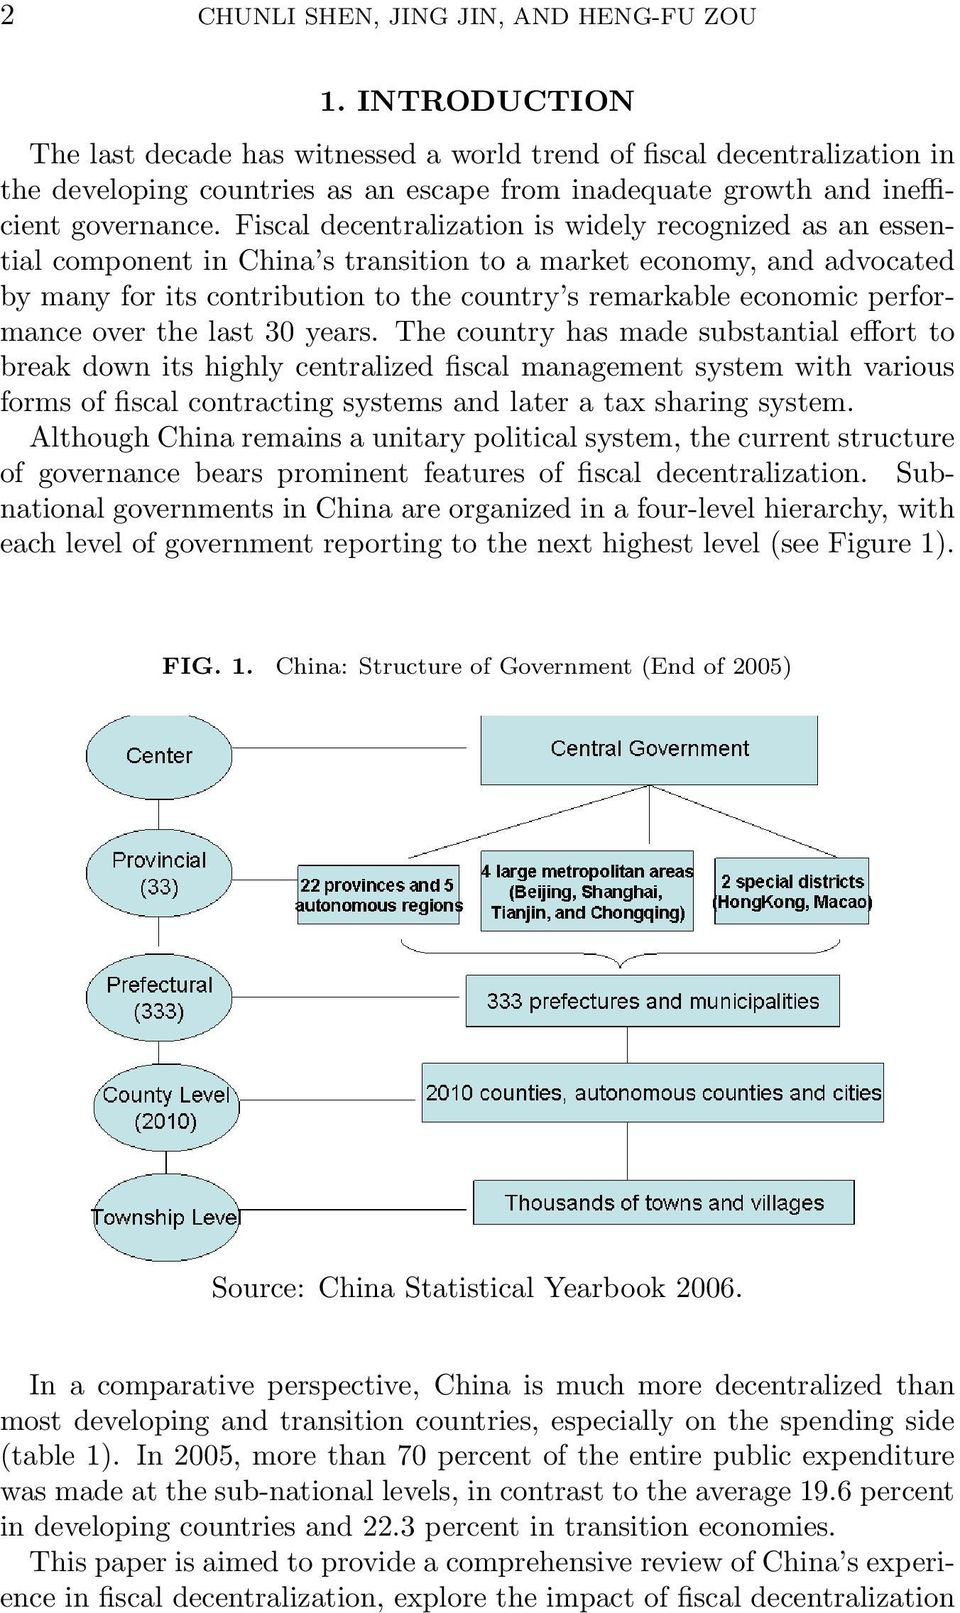 Fiscal decentralization is widely recognized as an essential component in China s transition to a market economy, and advocated by many for its contribution to the country s remarkable economic